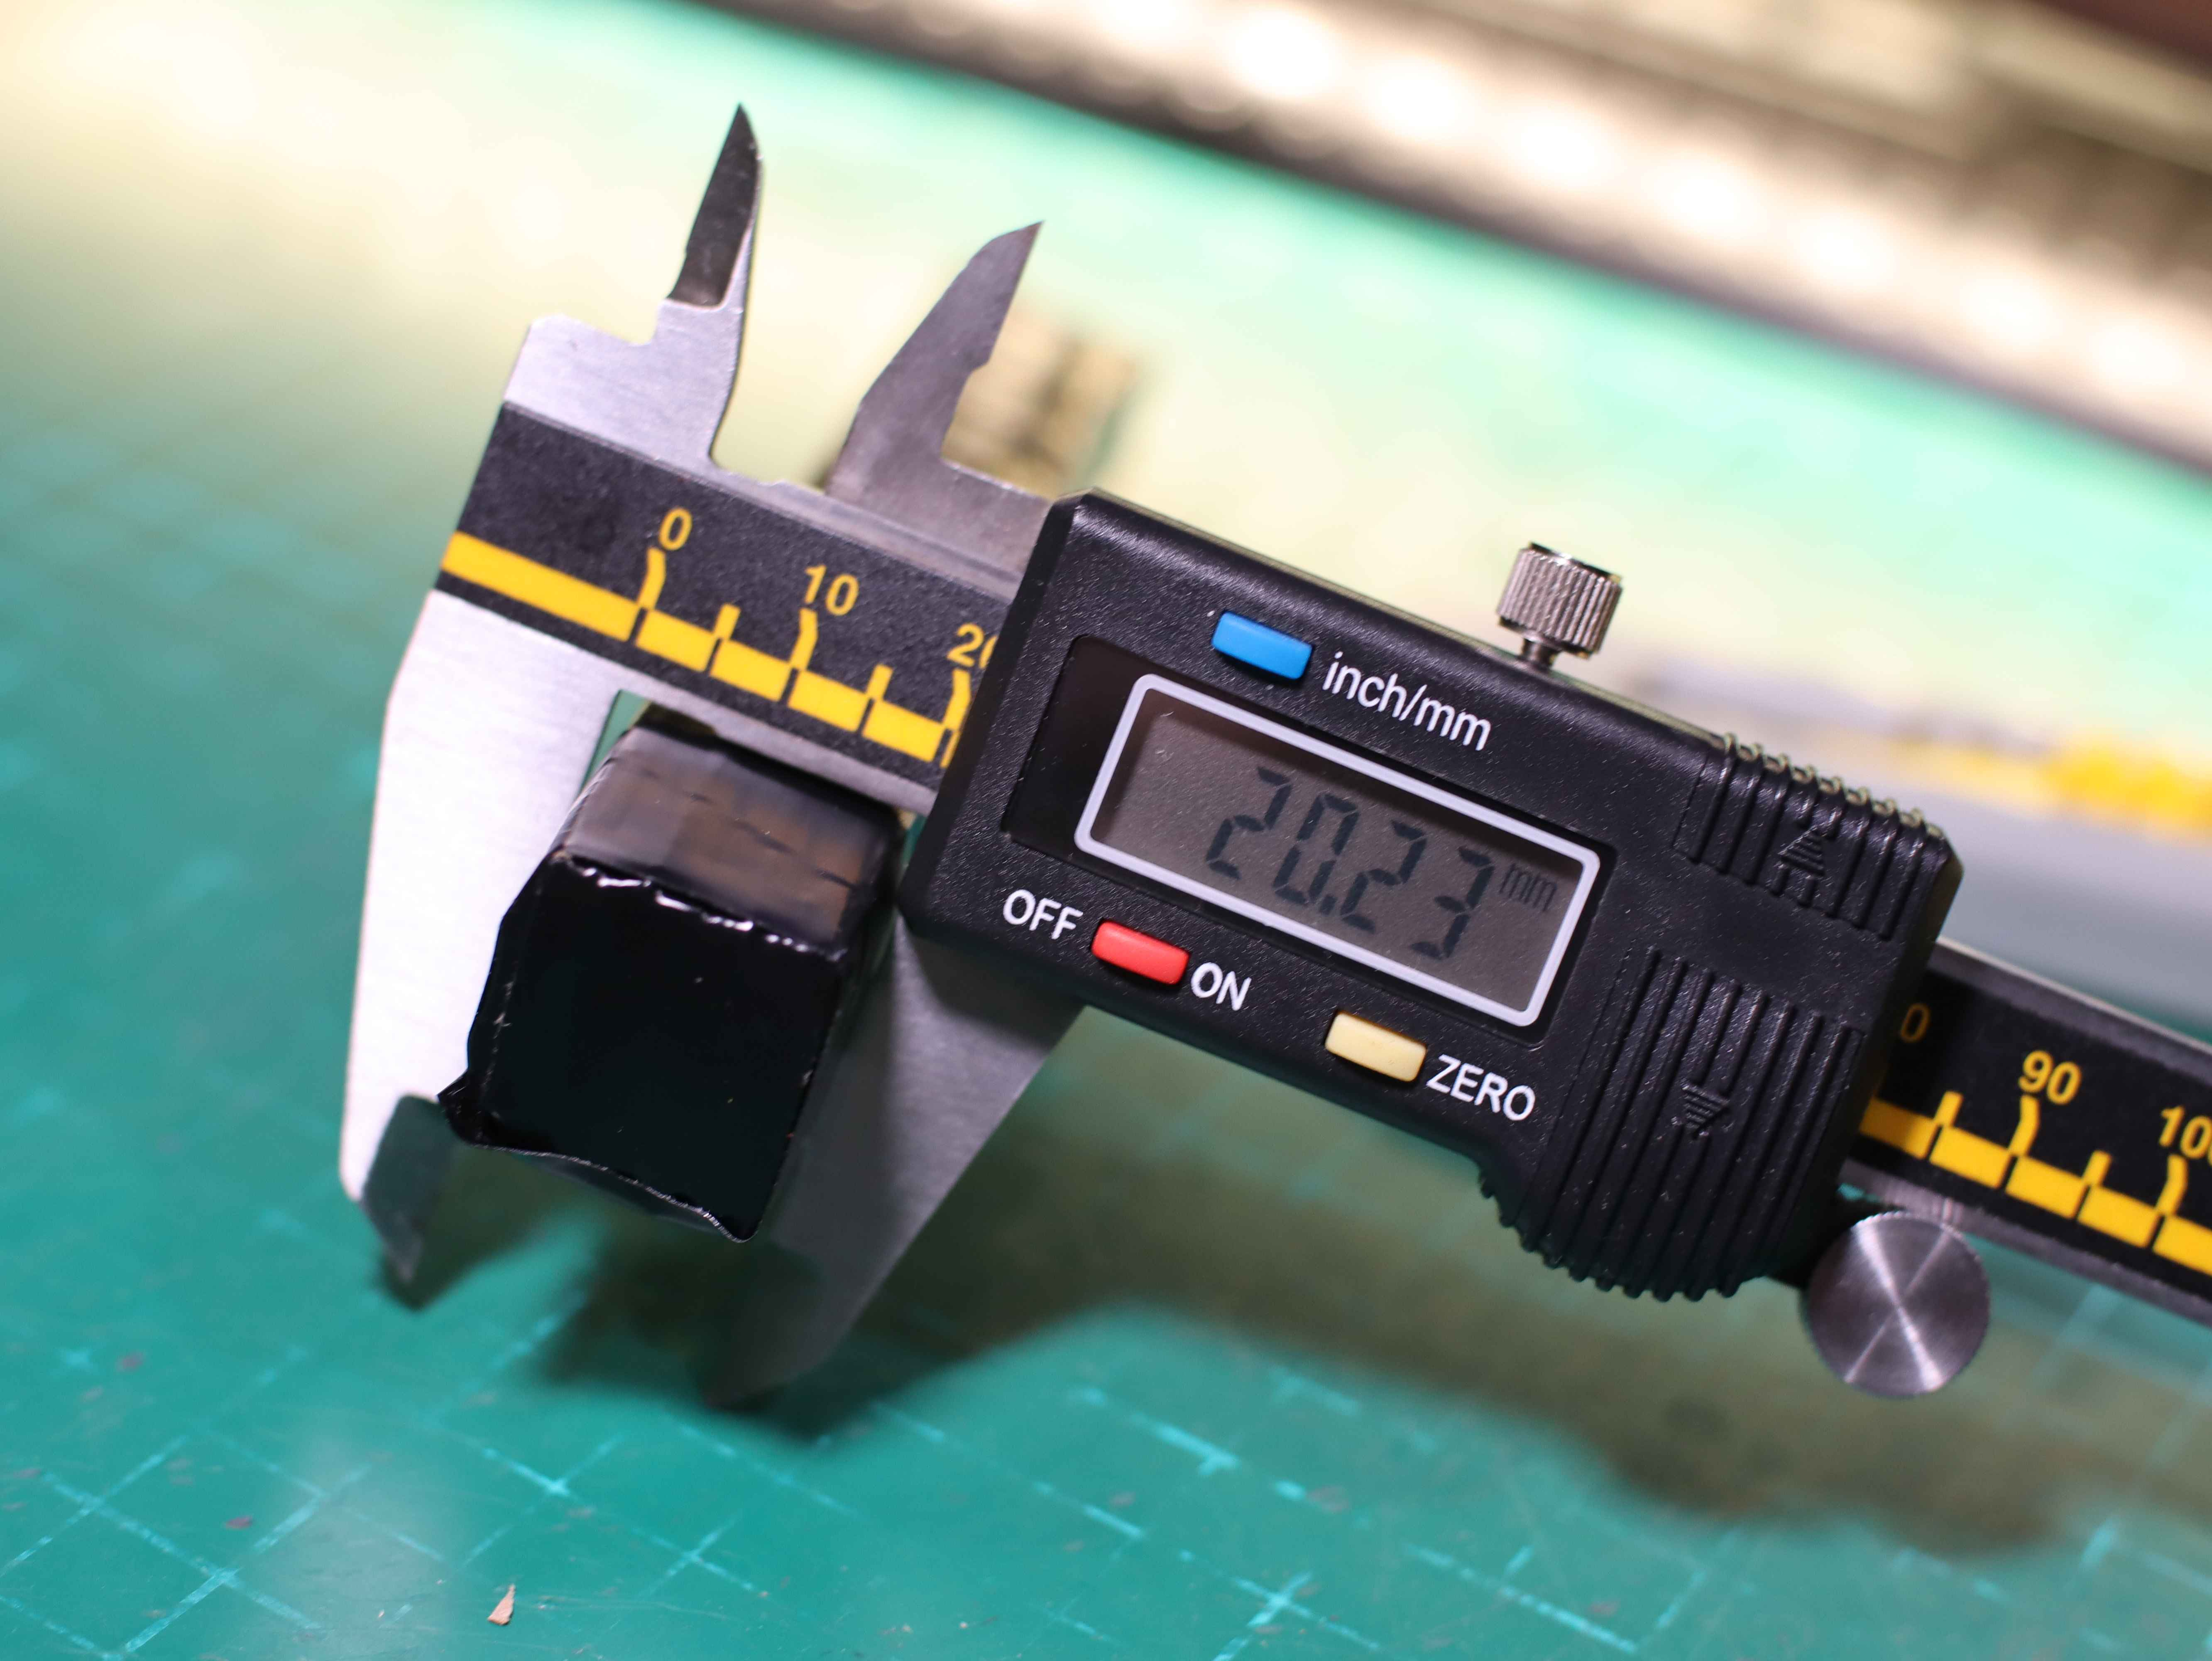 Airsoft battery thickness measurement from cardboard. Caliper, cardboard battery, covered with black insulating tape.